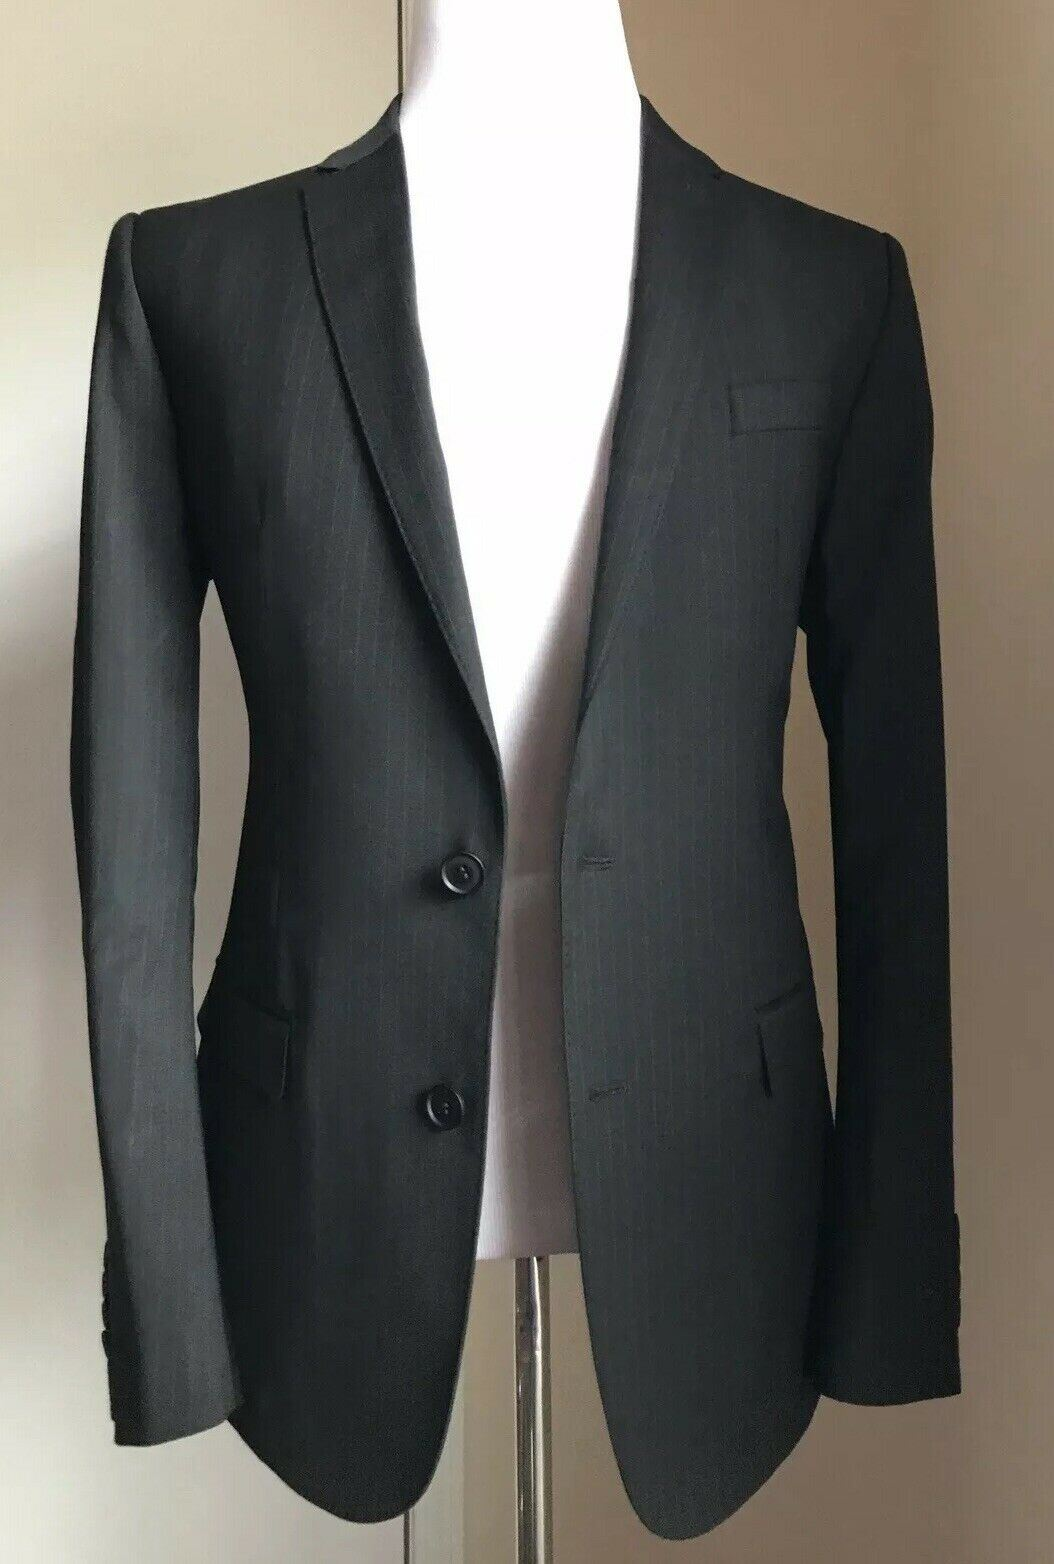 New $1795 Dolce & Gabbana Men Sport Coat Blazer Black 40R US ( 50R Eu )